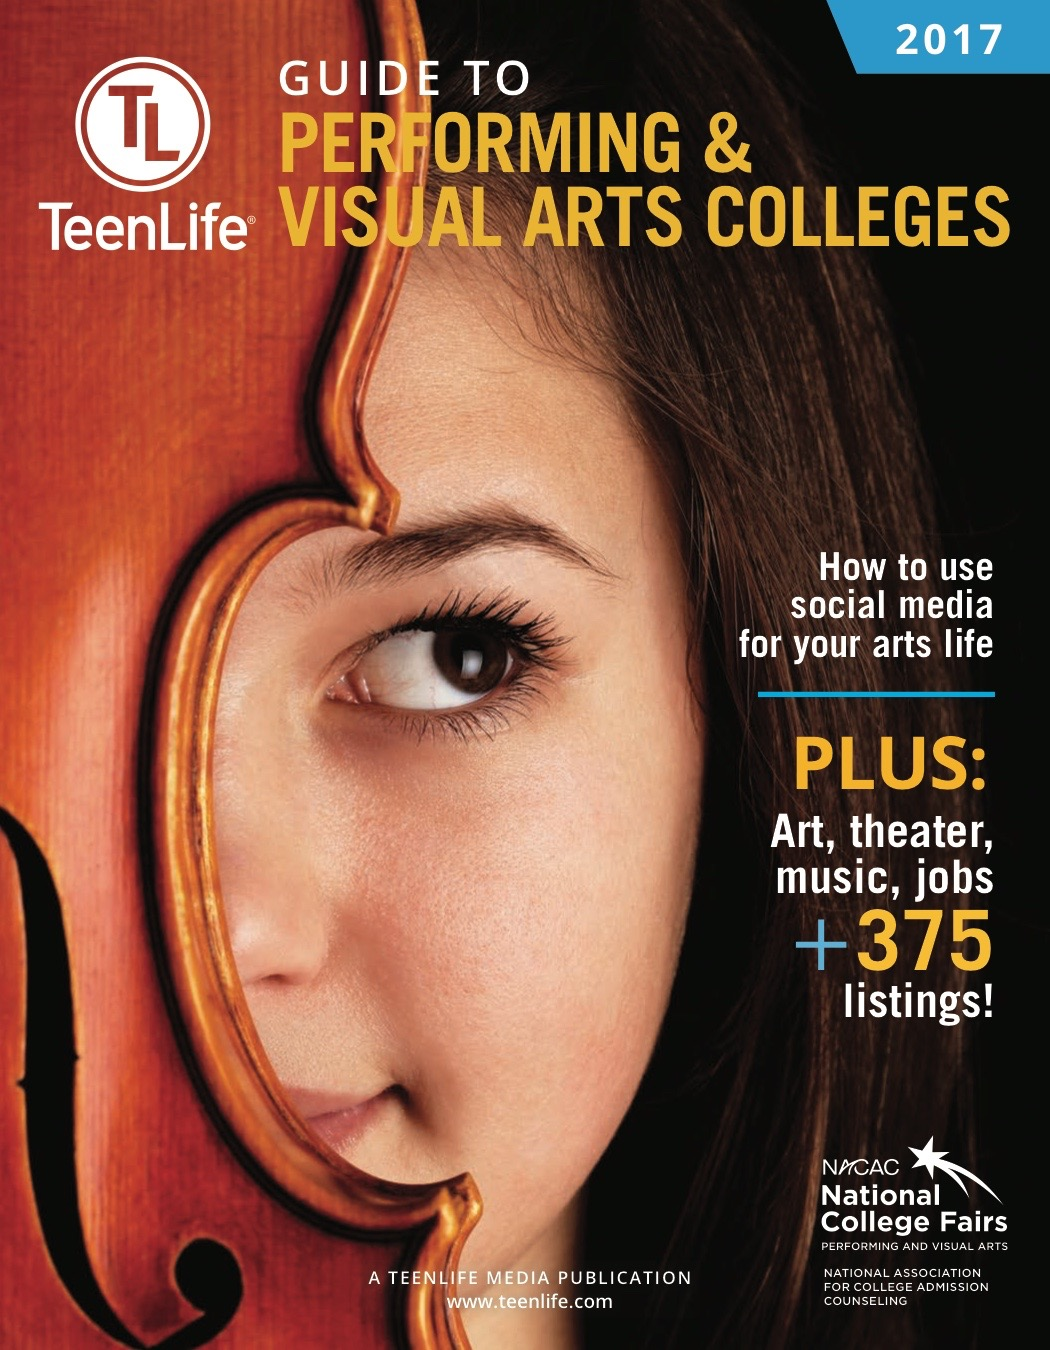 Guide to Performing & Visual Arts Colleges-TeenLife